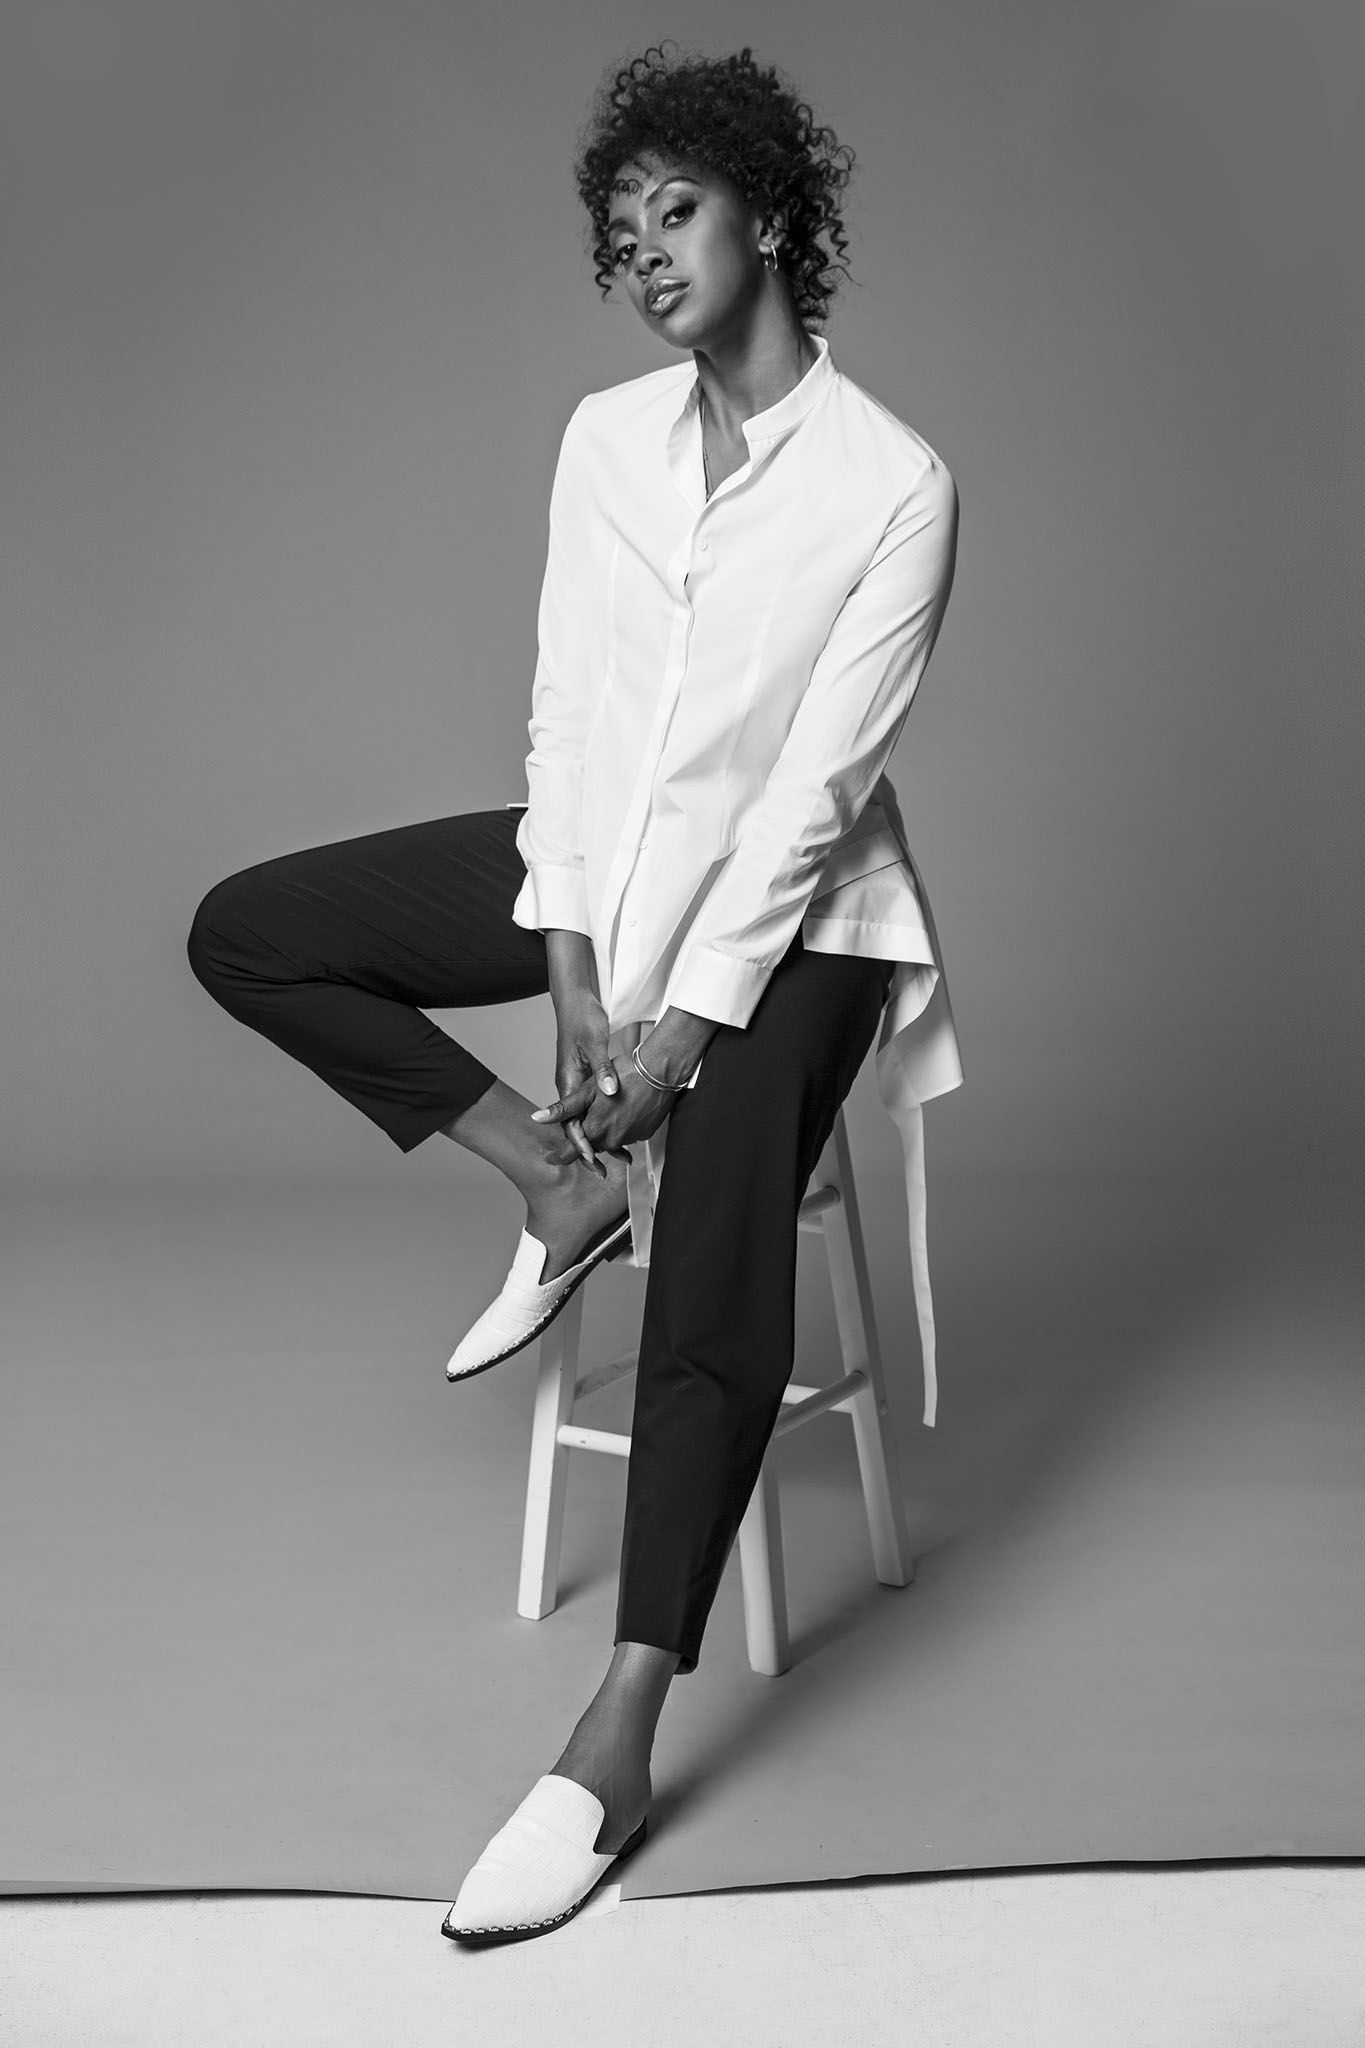 Condola Rashad in Jil Sander's white cotton top and Tibi's wool pants. Paige Novick necklace and earrings, Established Jewelry rings and Sigerson Morrison shoes.